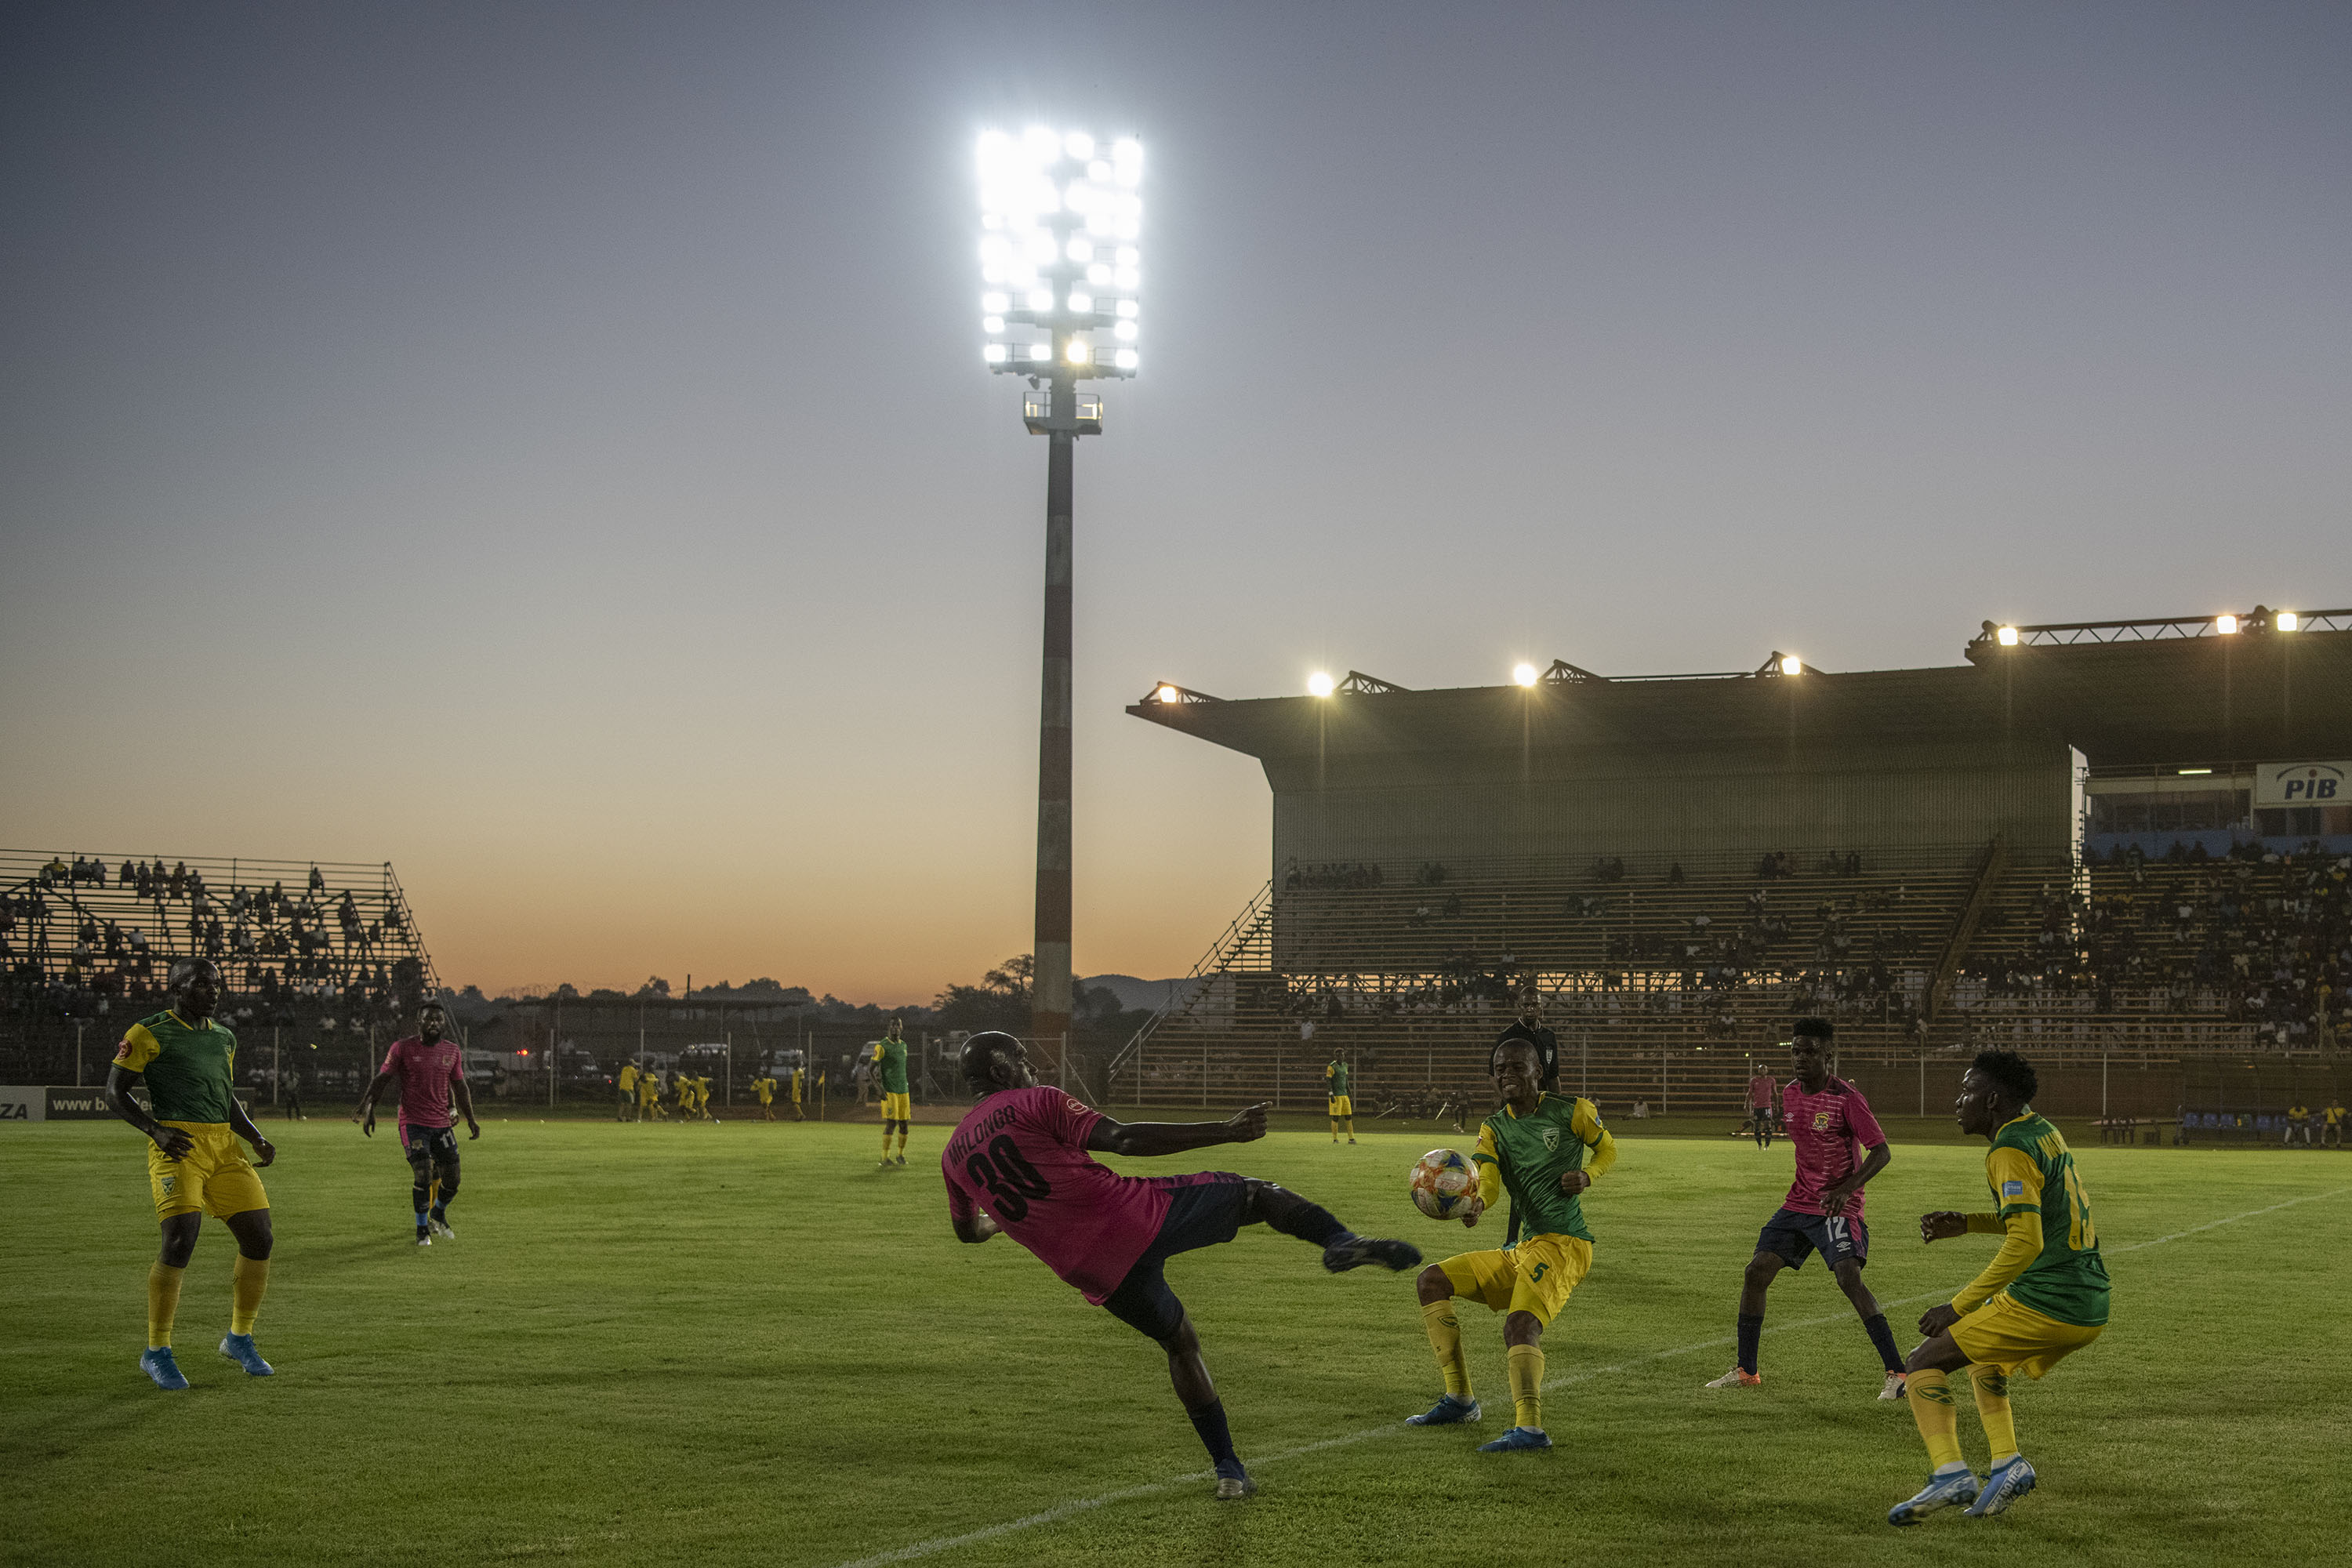 30 November 2019: Action on the pitch between Black Leopards and Golden Arrows at the  Thohoyandou Stadium in Limpopo.